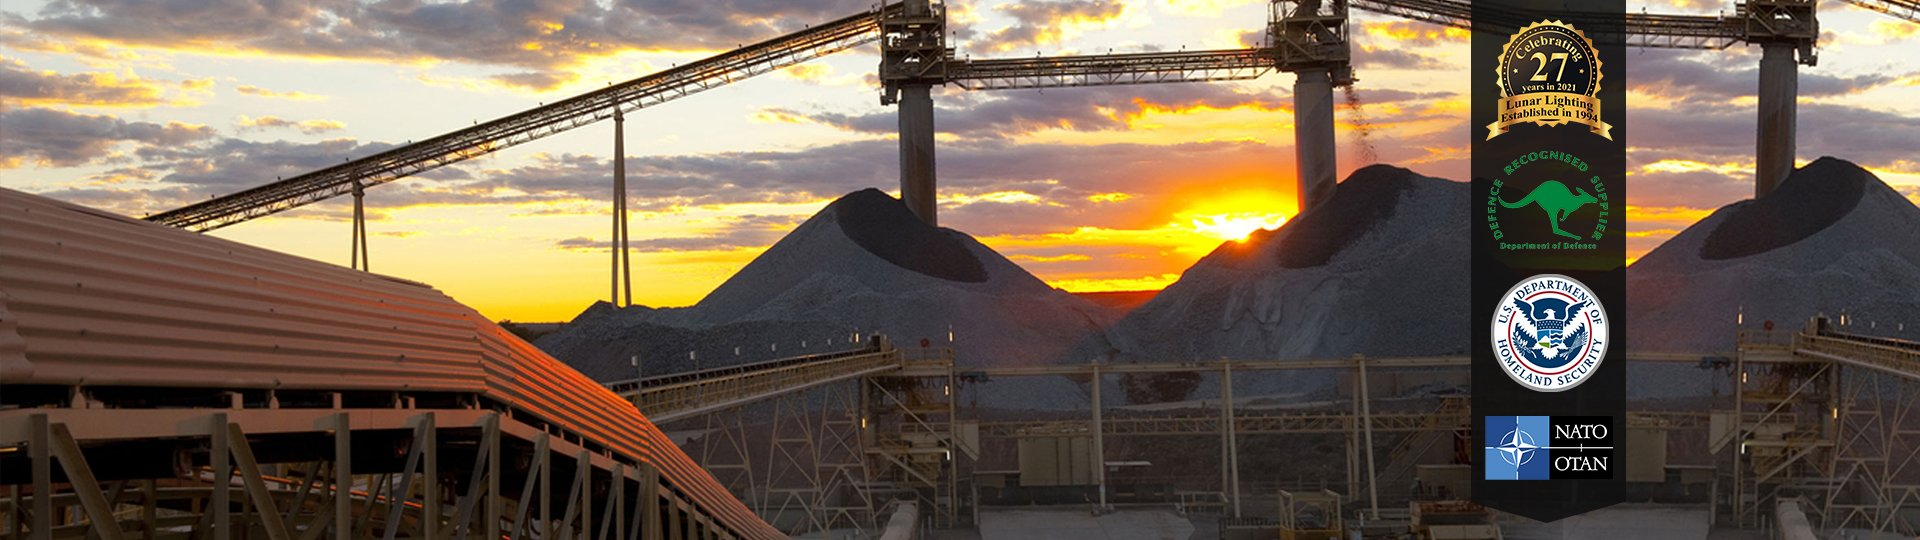 Mining, Resources & Energy Sector